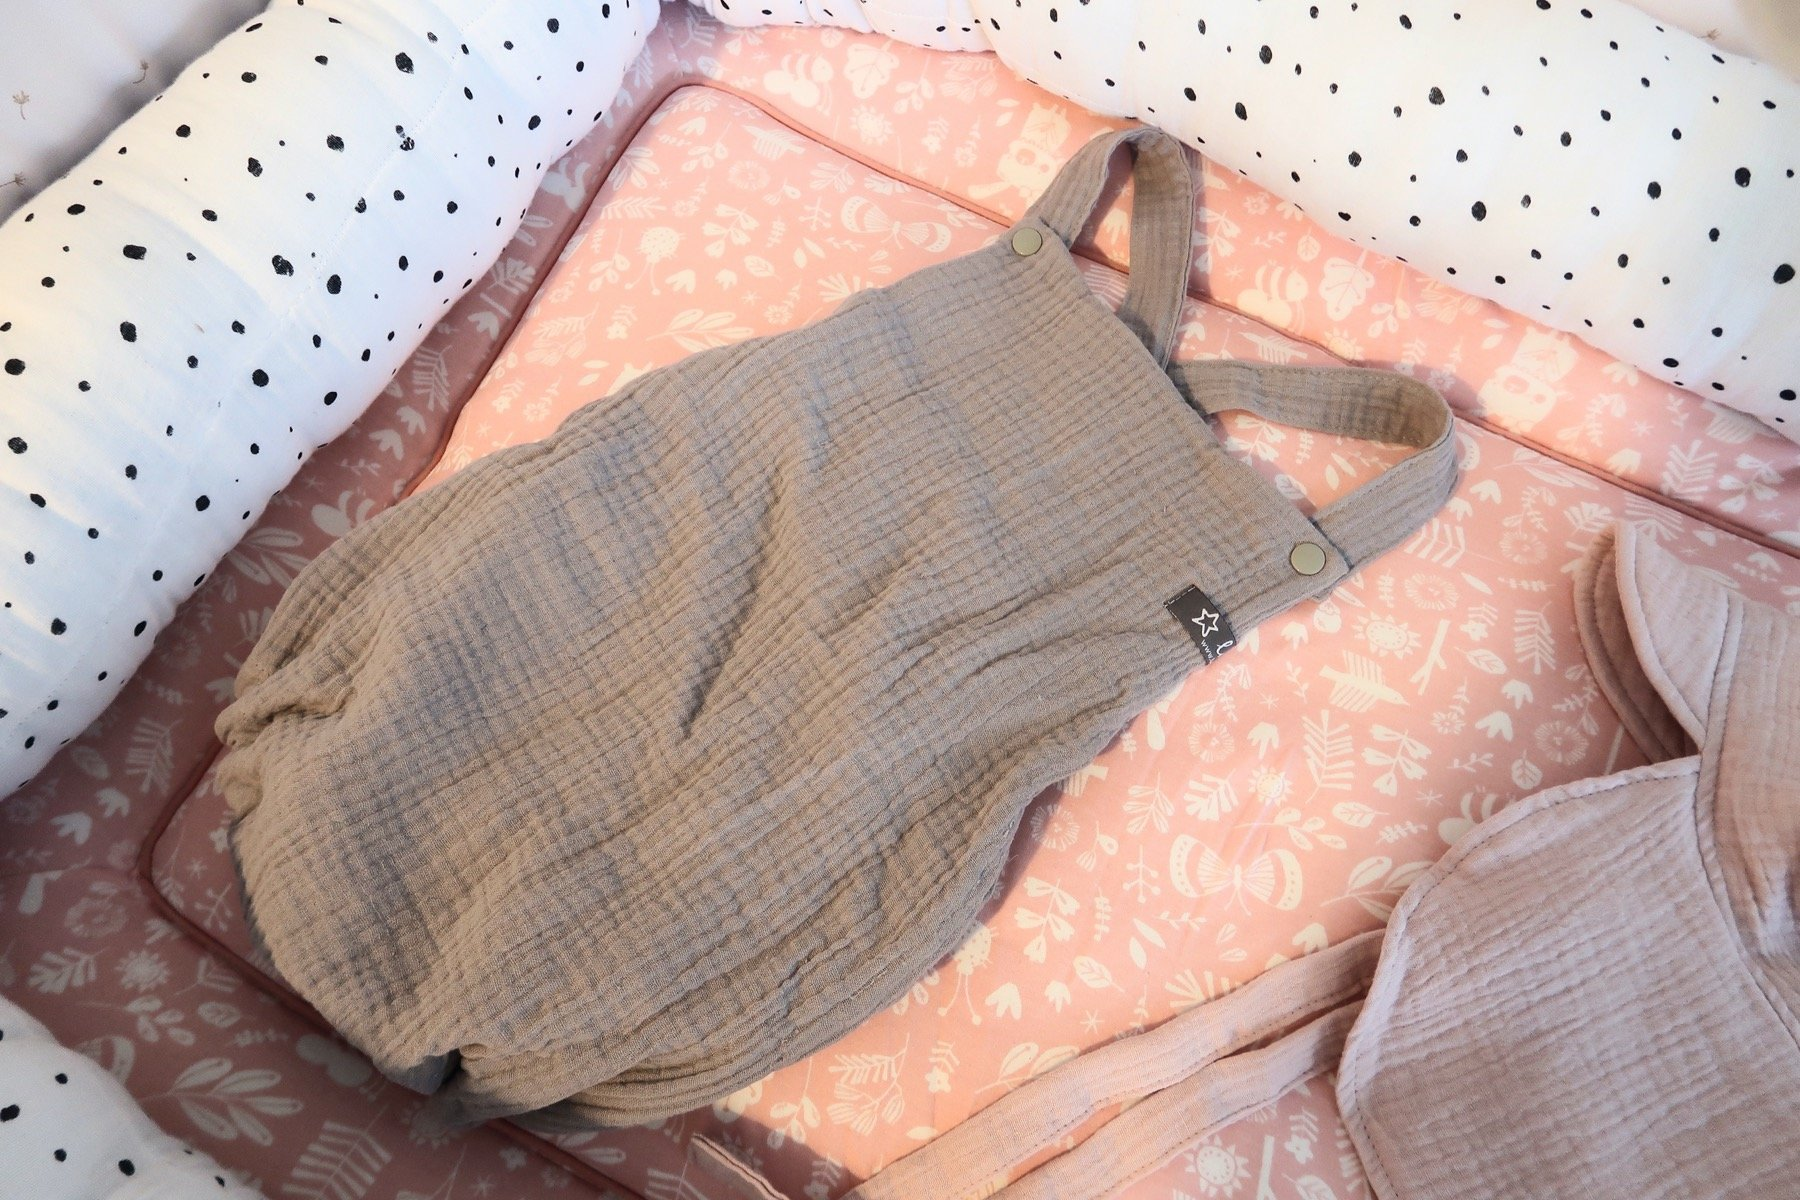 jenna minnie jennaminnie la-lou babyshop fashion blog